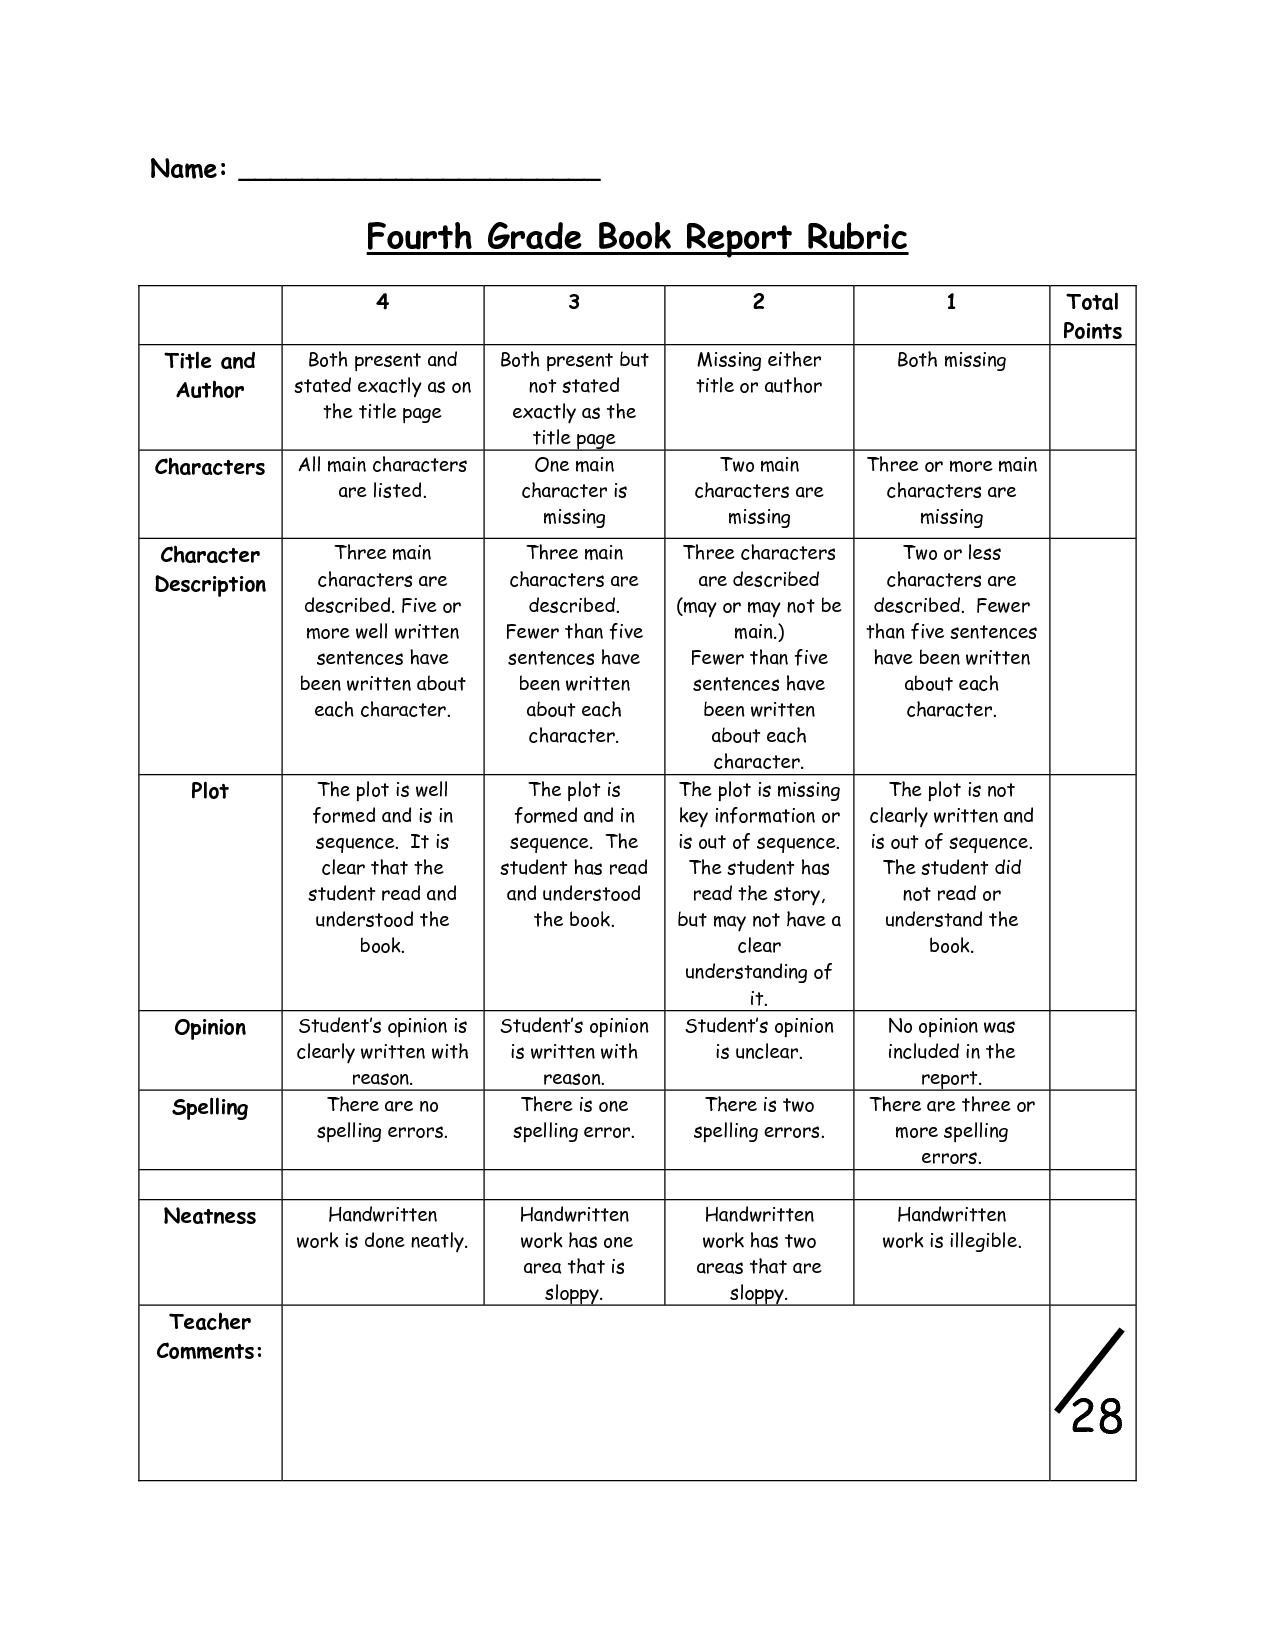 fourth grade book report rubric pdf pdf teaching fourth grade book report rubric pdf pdf